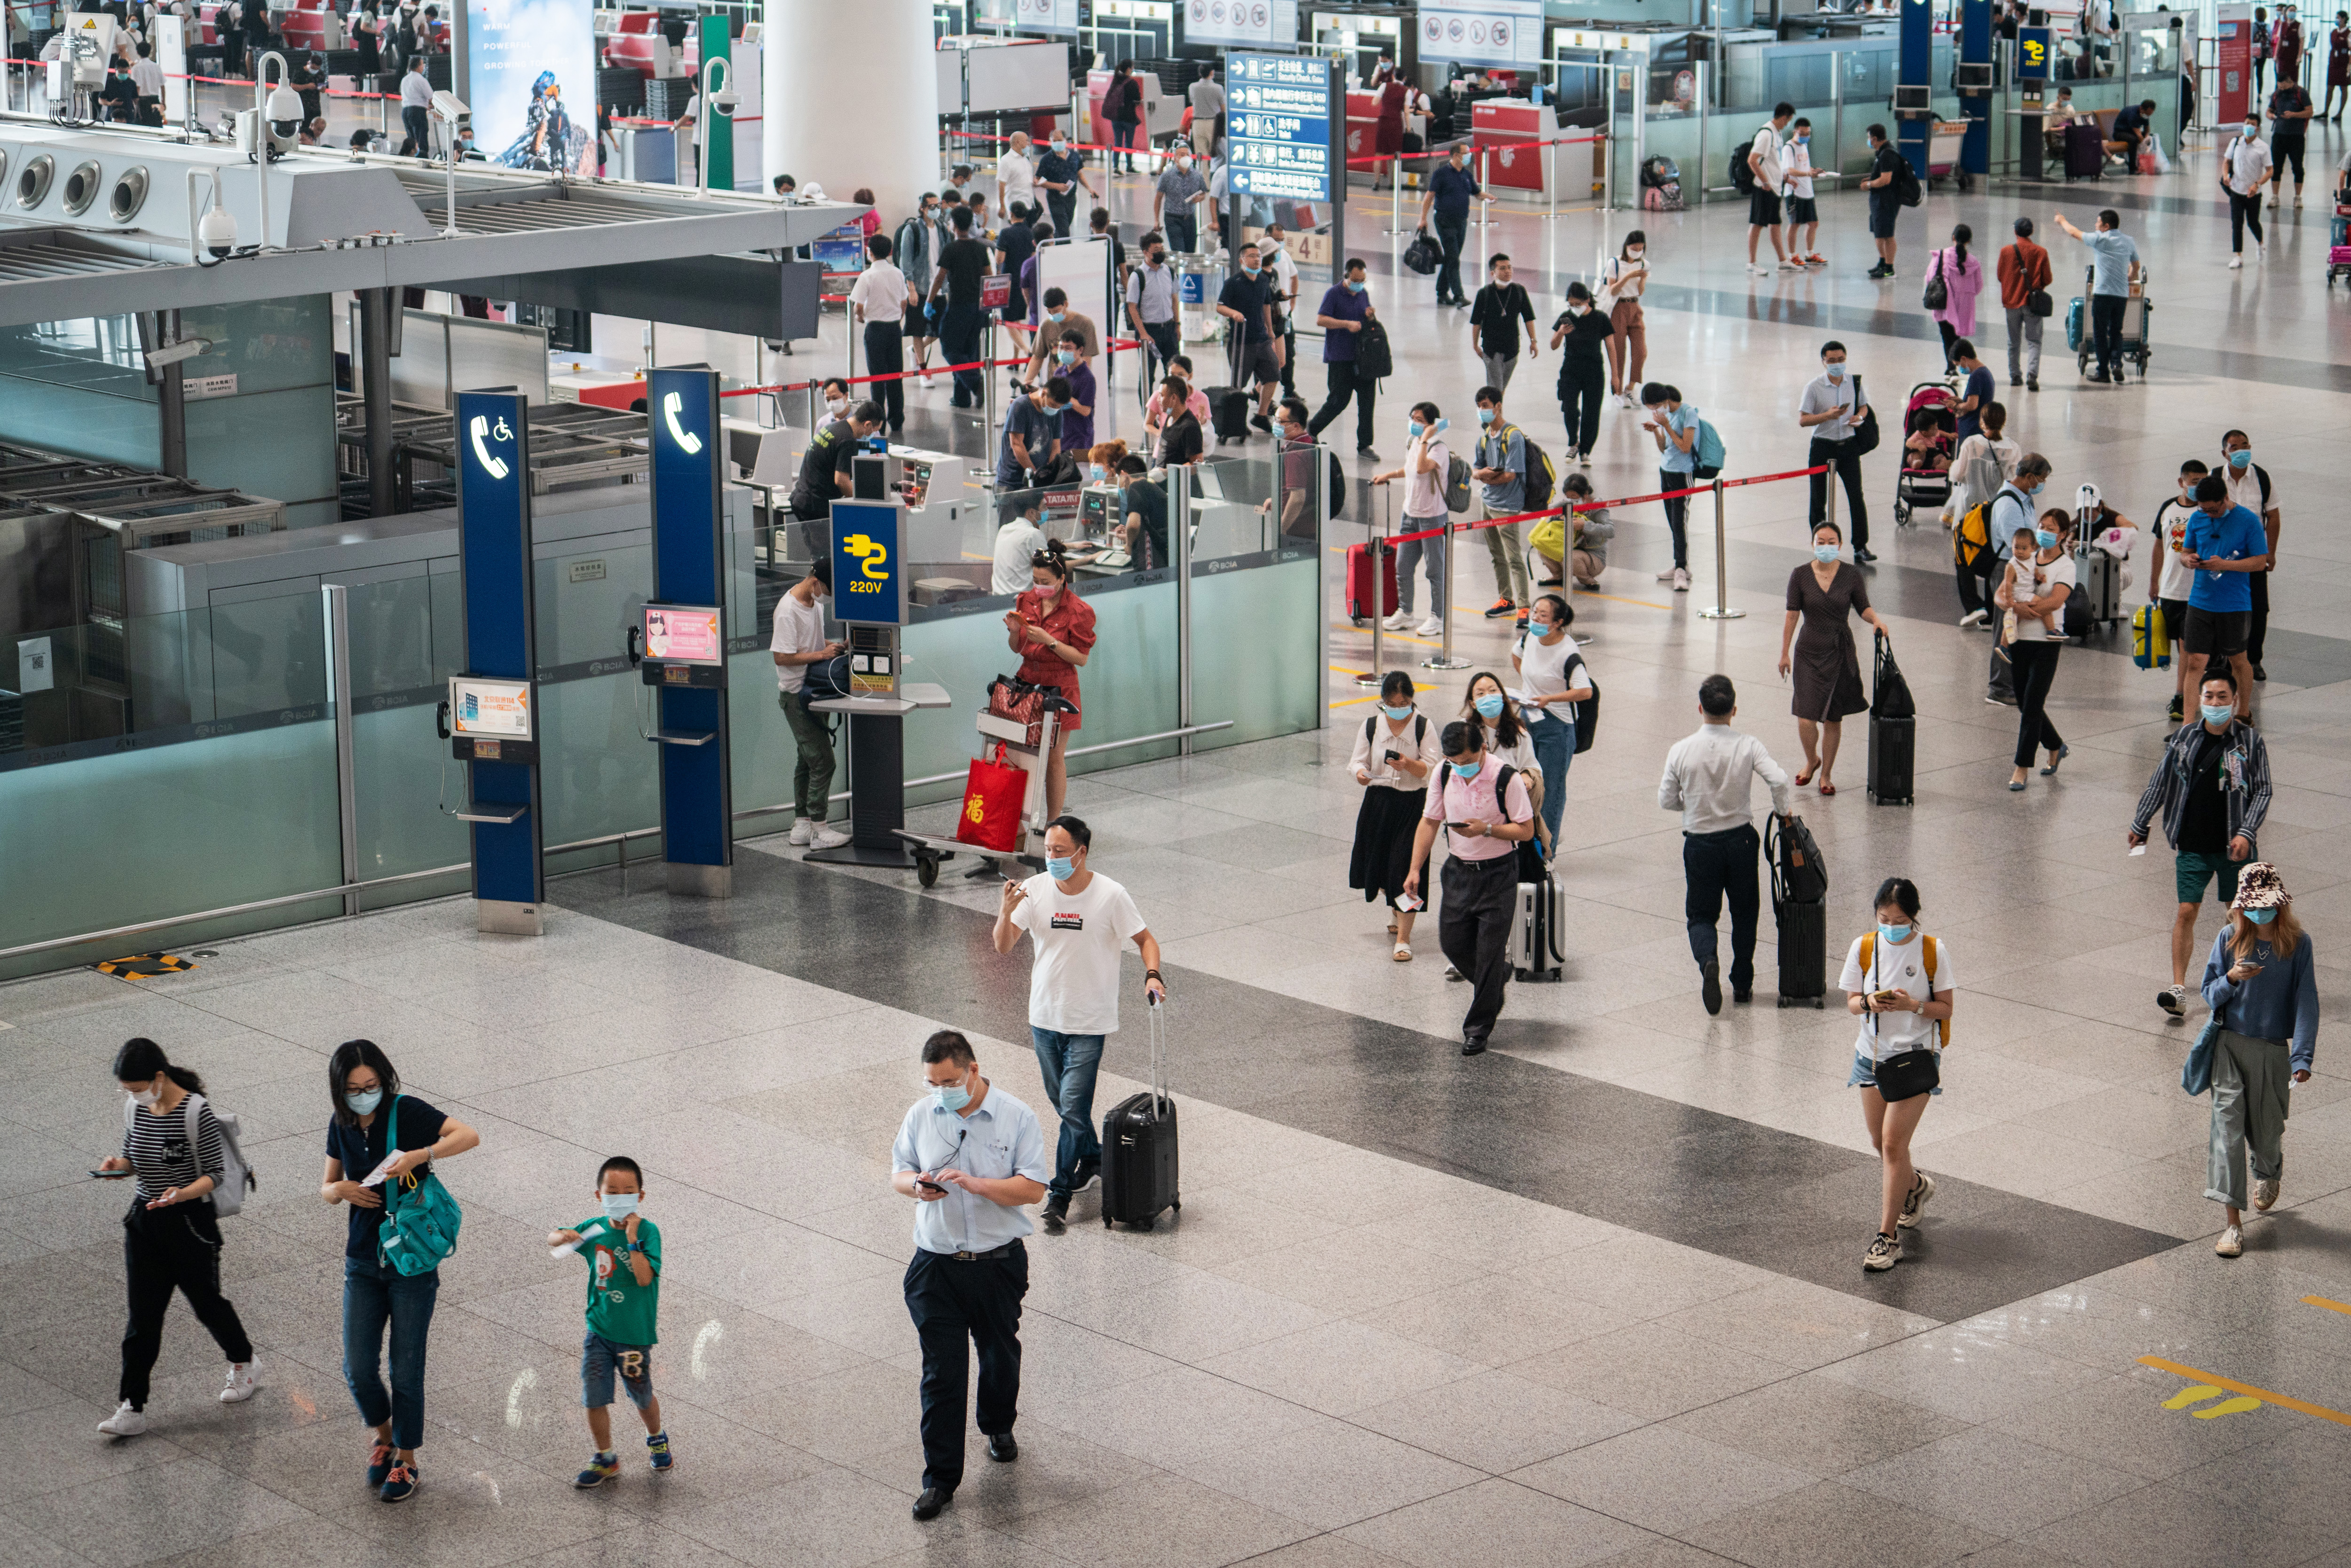 People walk through Beijing Capital International Airport in China, on August 25.